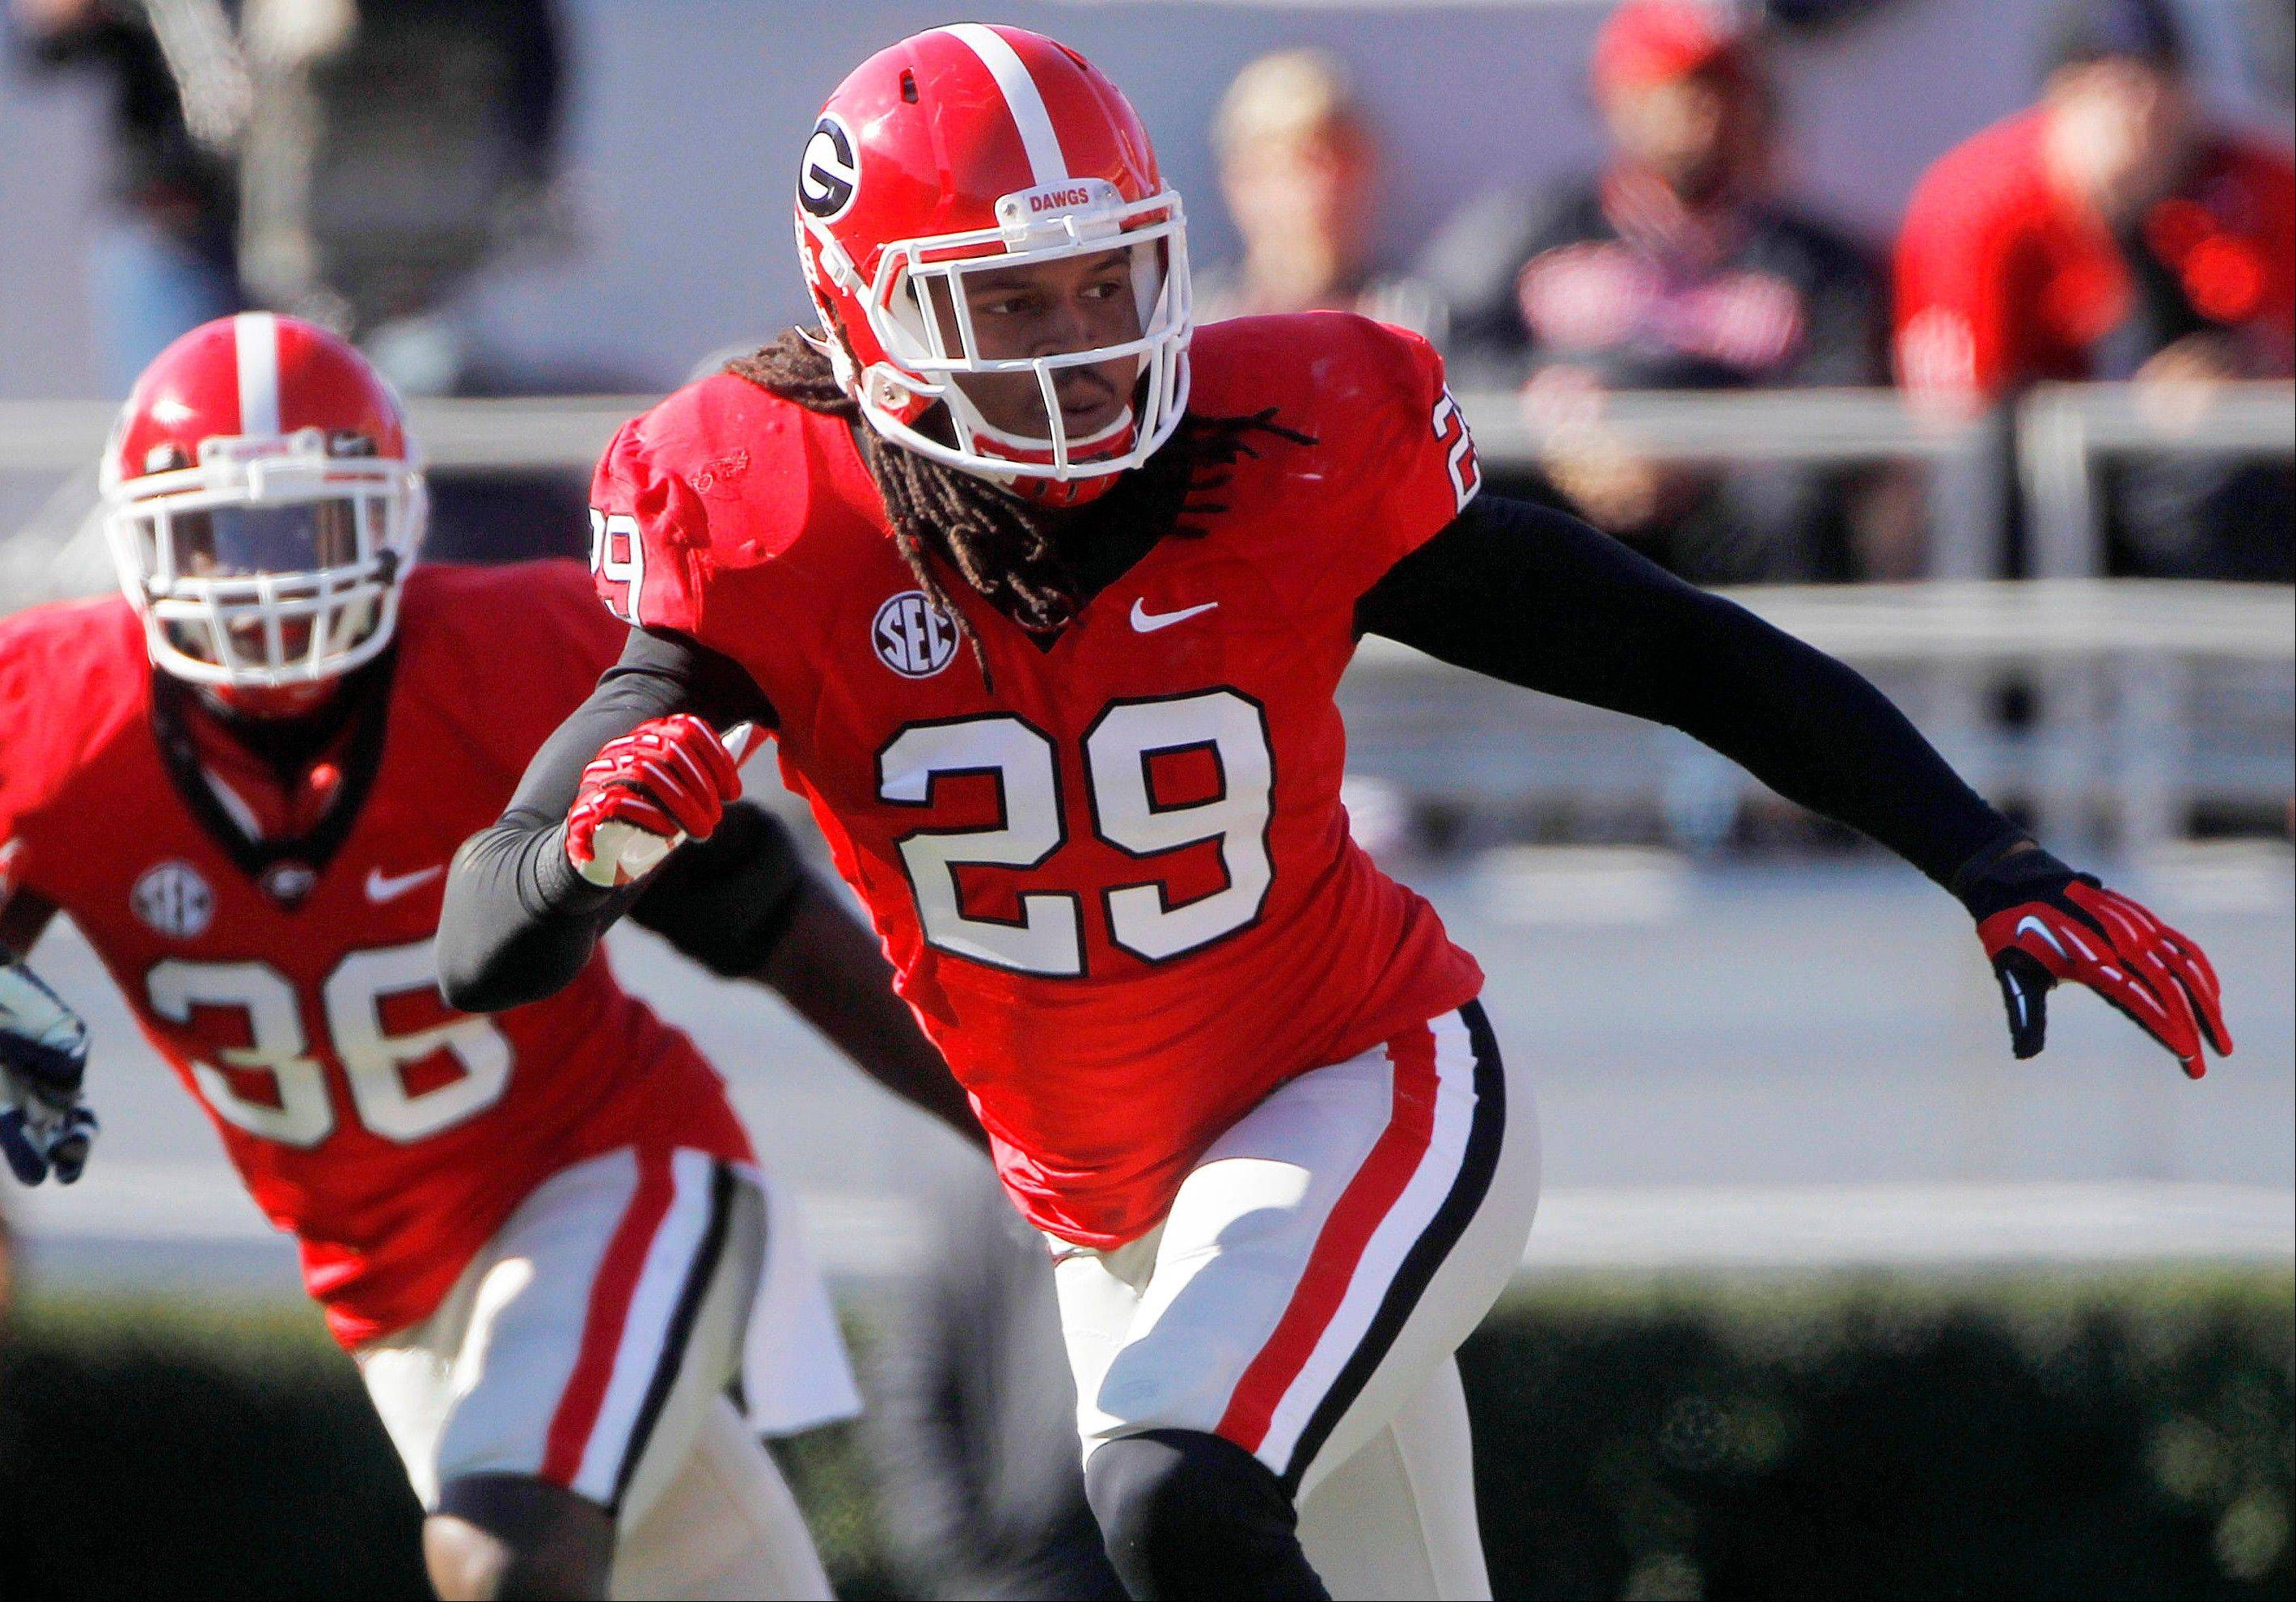 Georgia linebacker Jarvis Jones (29) follows the action against Georgia Southern in Athens, Ga. Jarvis was selected to the first-team on The Associated Press All-America football team.